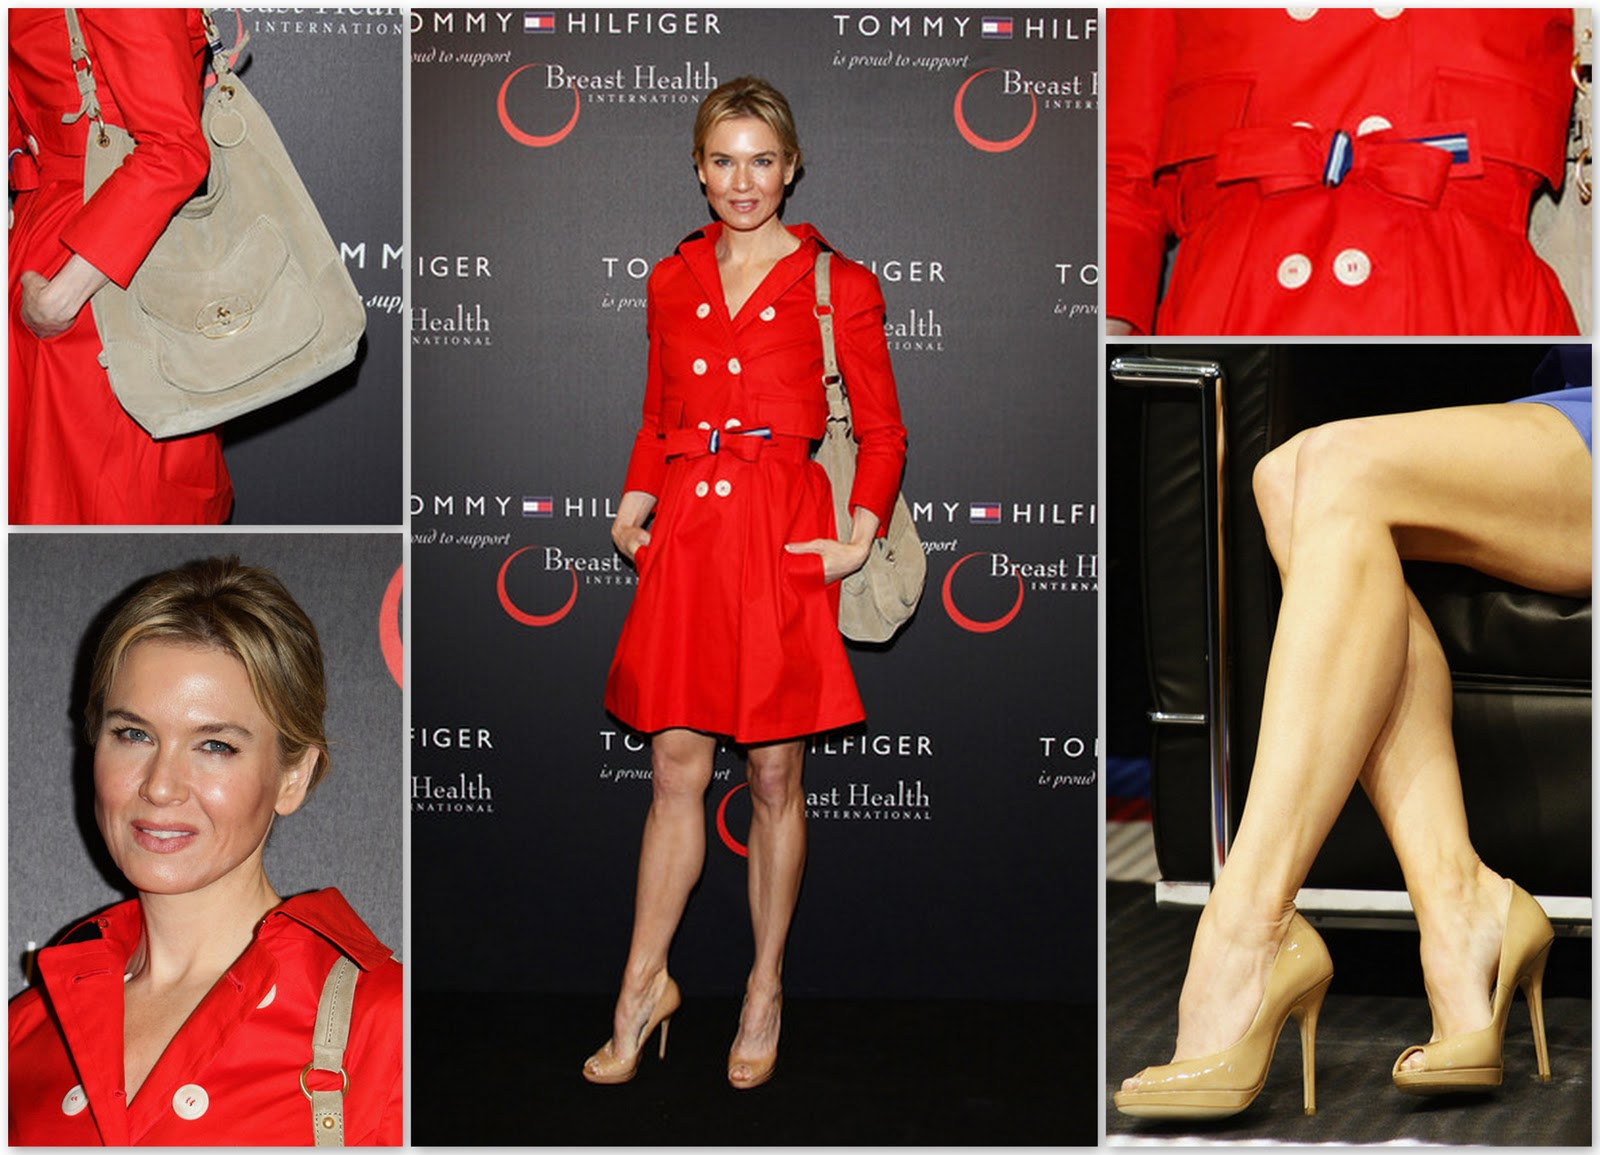 Watch EXCLUSIVE Renee Zellweger fronts Tommy Hilfiger charity campaign video